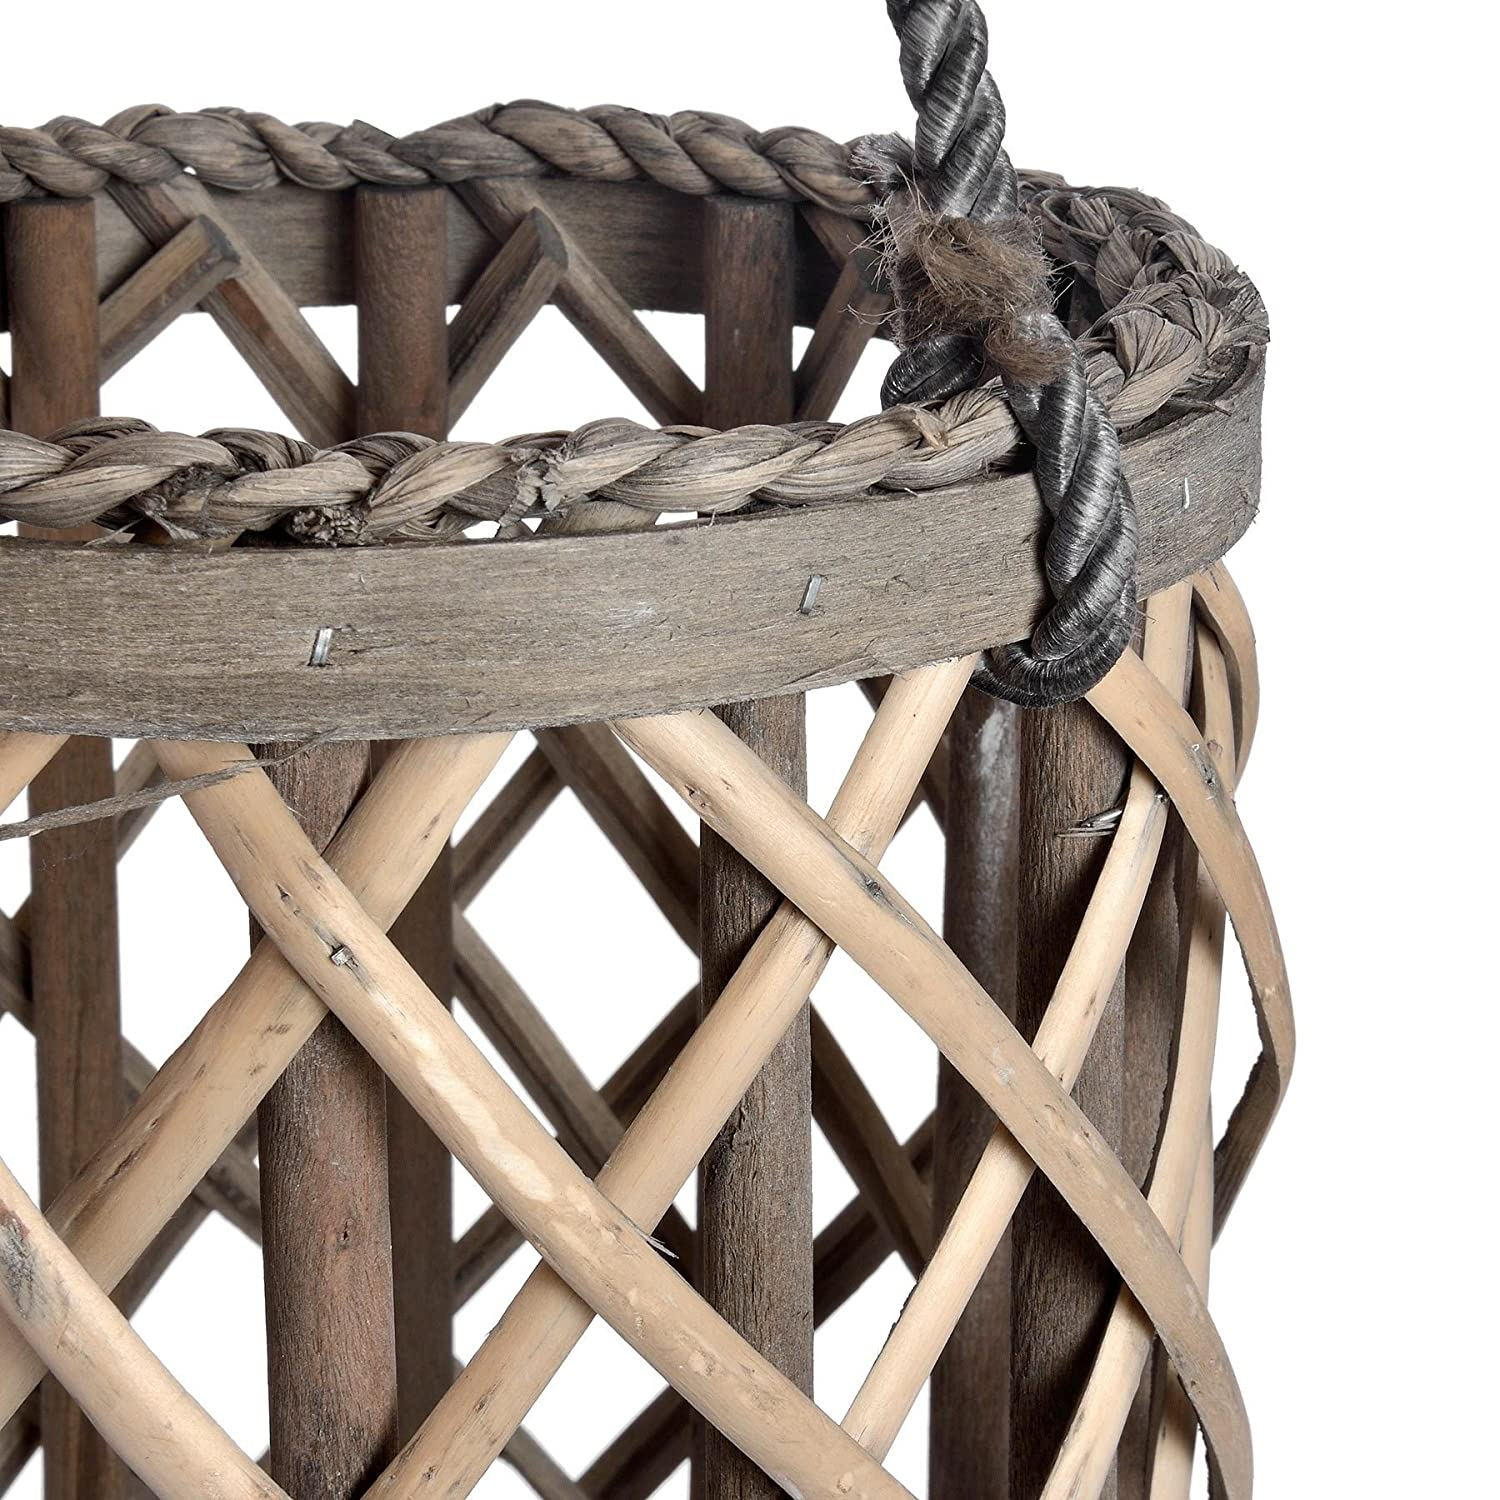 Home Works LARGE WICKER LANTERN WITH GLASS HURRICANE